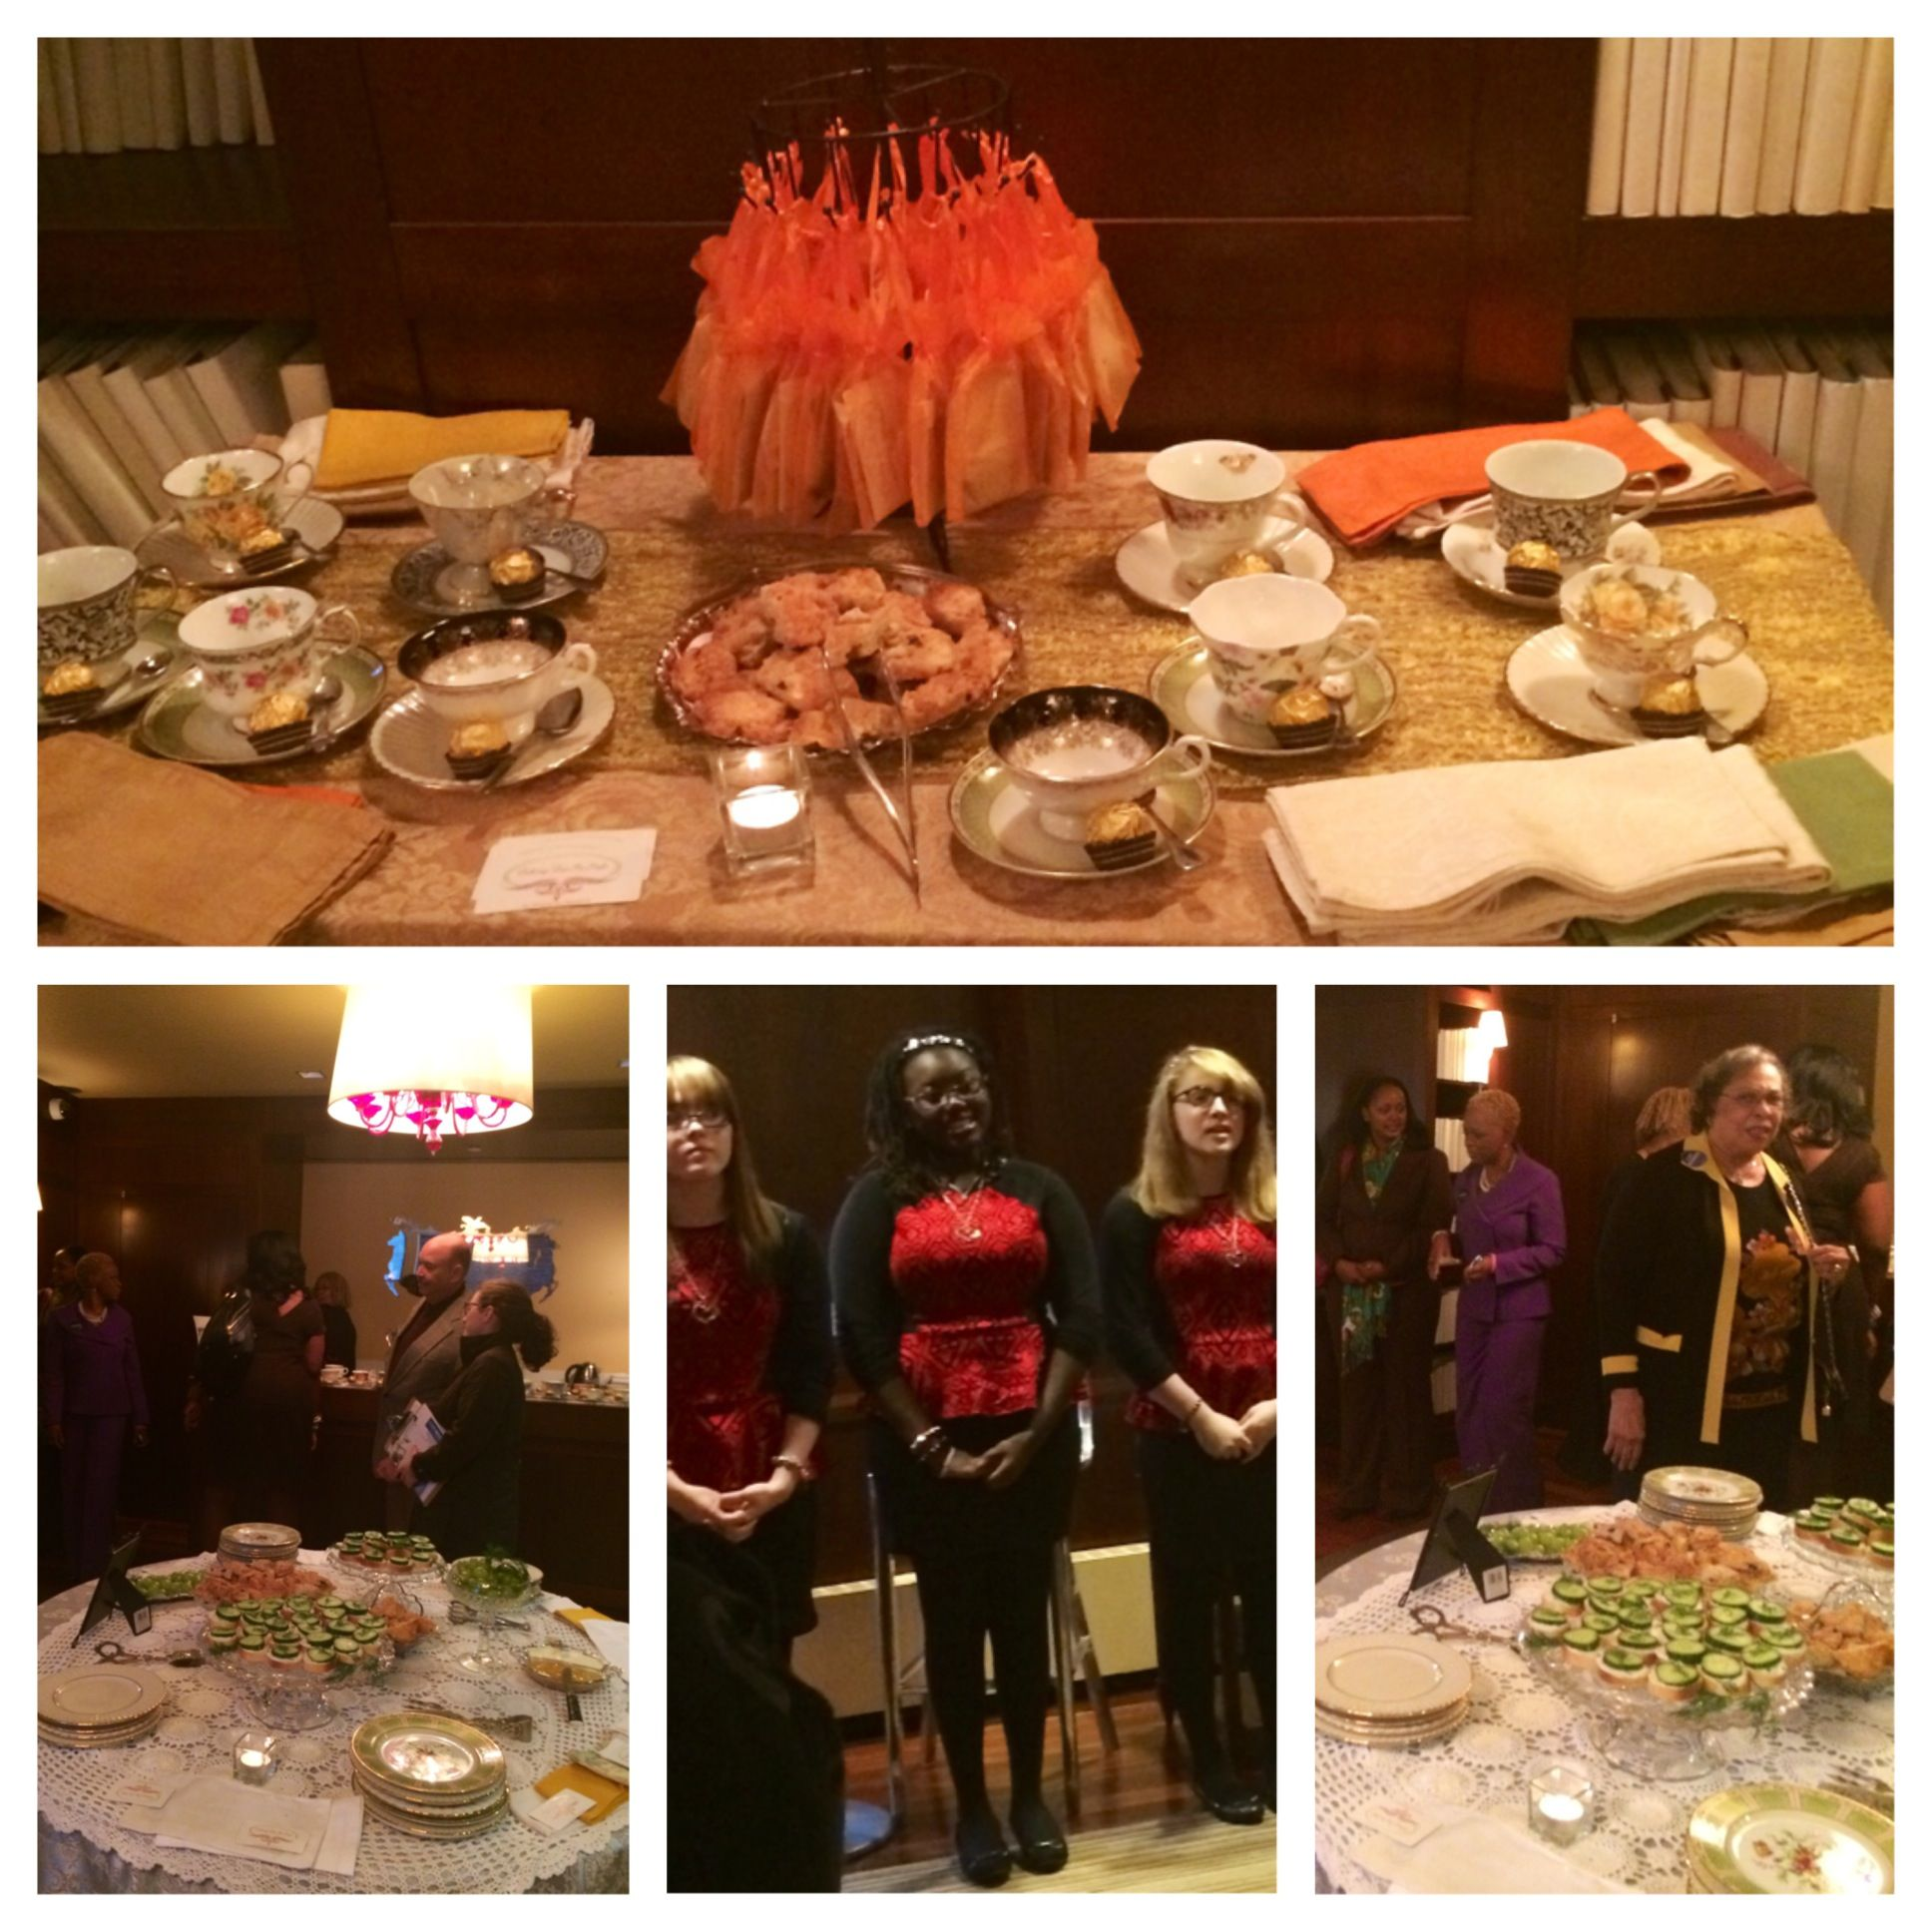 It was great creating a tea party for this fundraiser